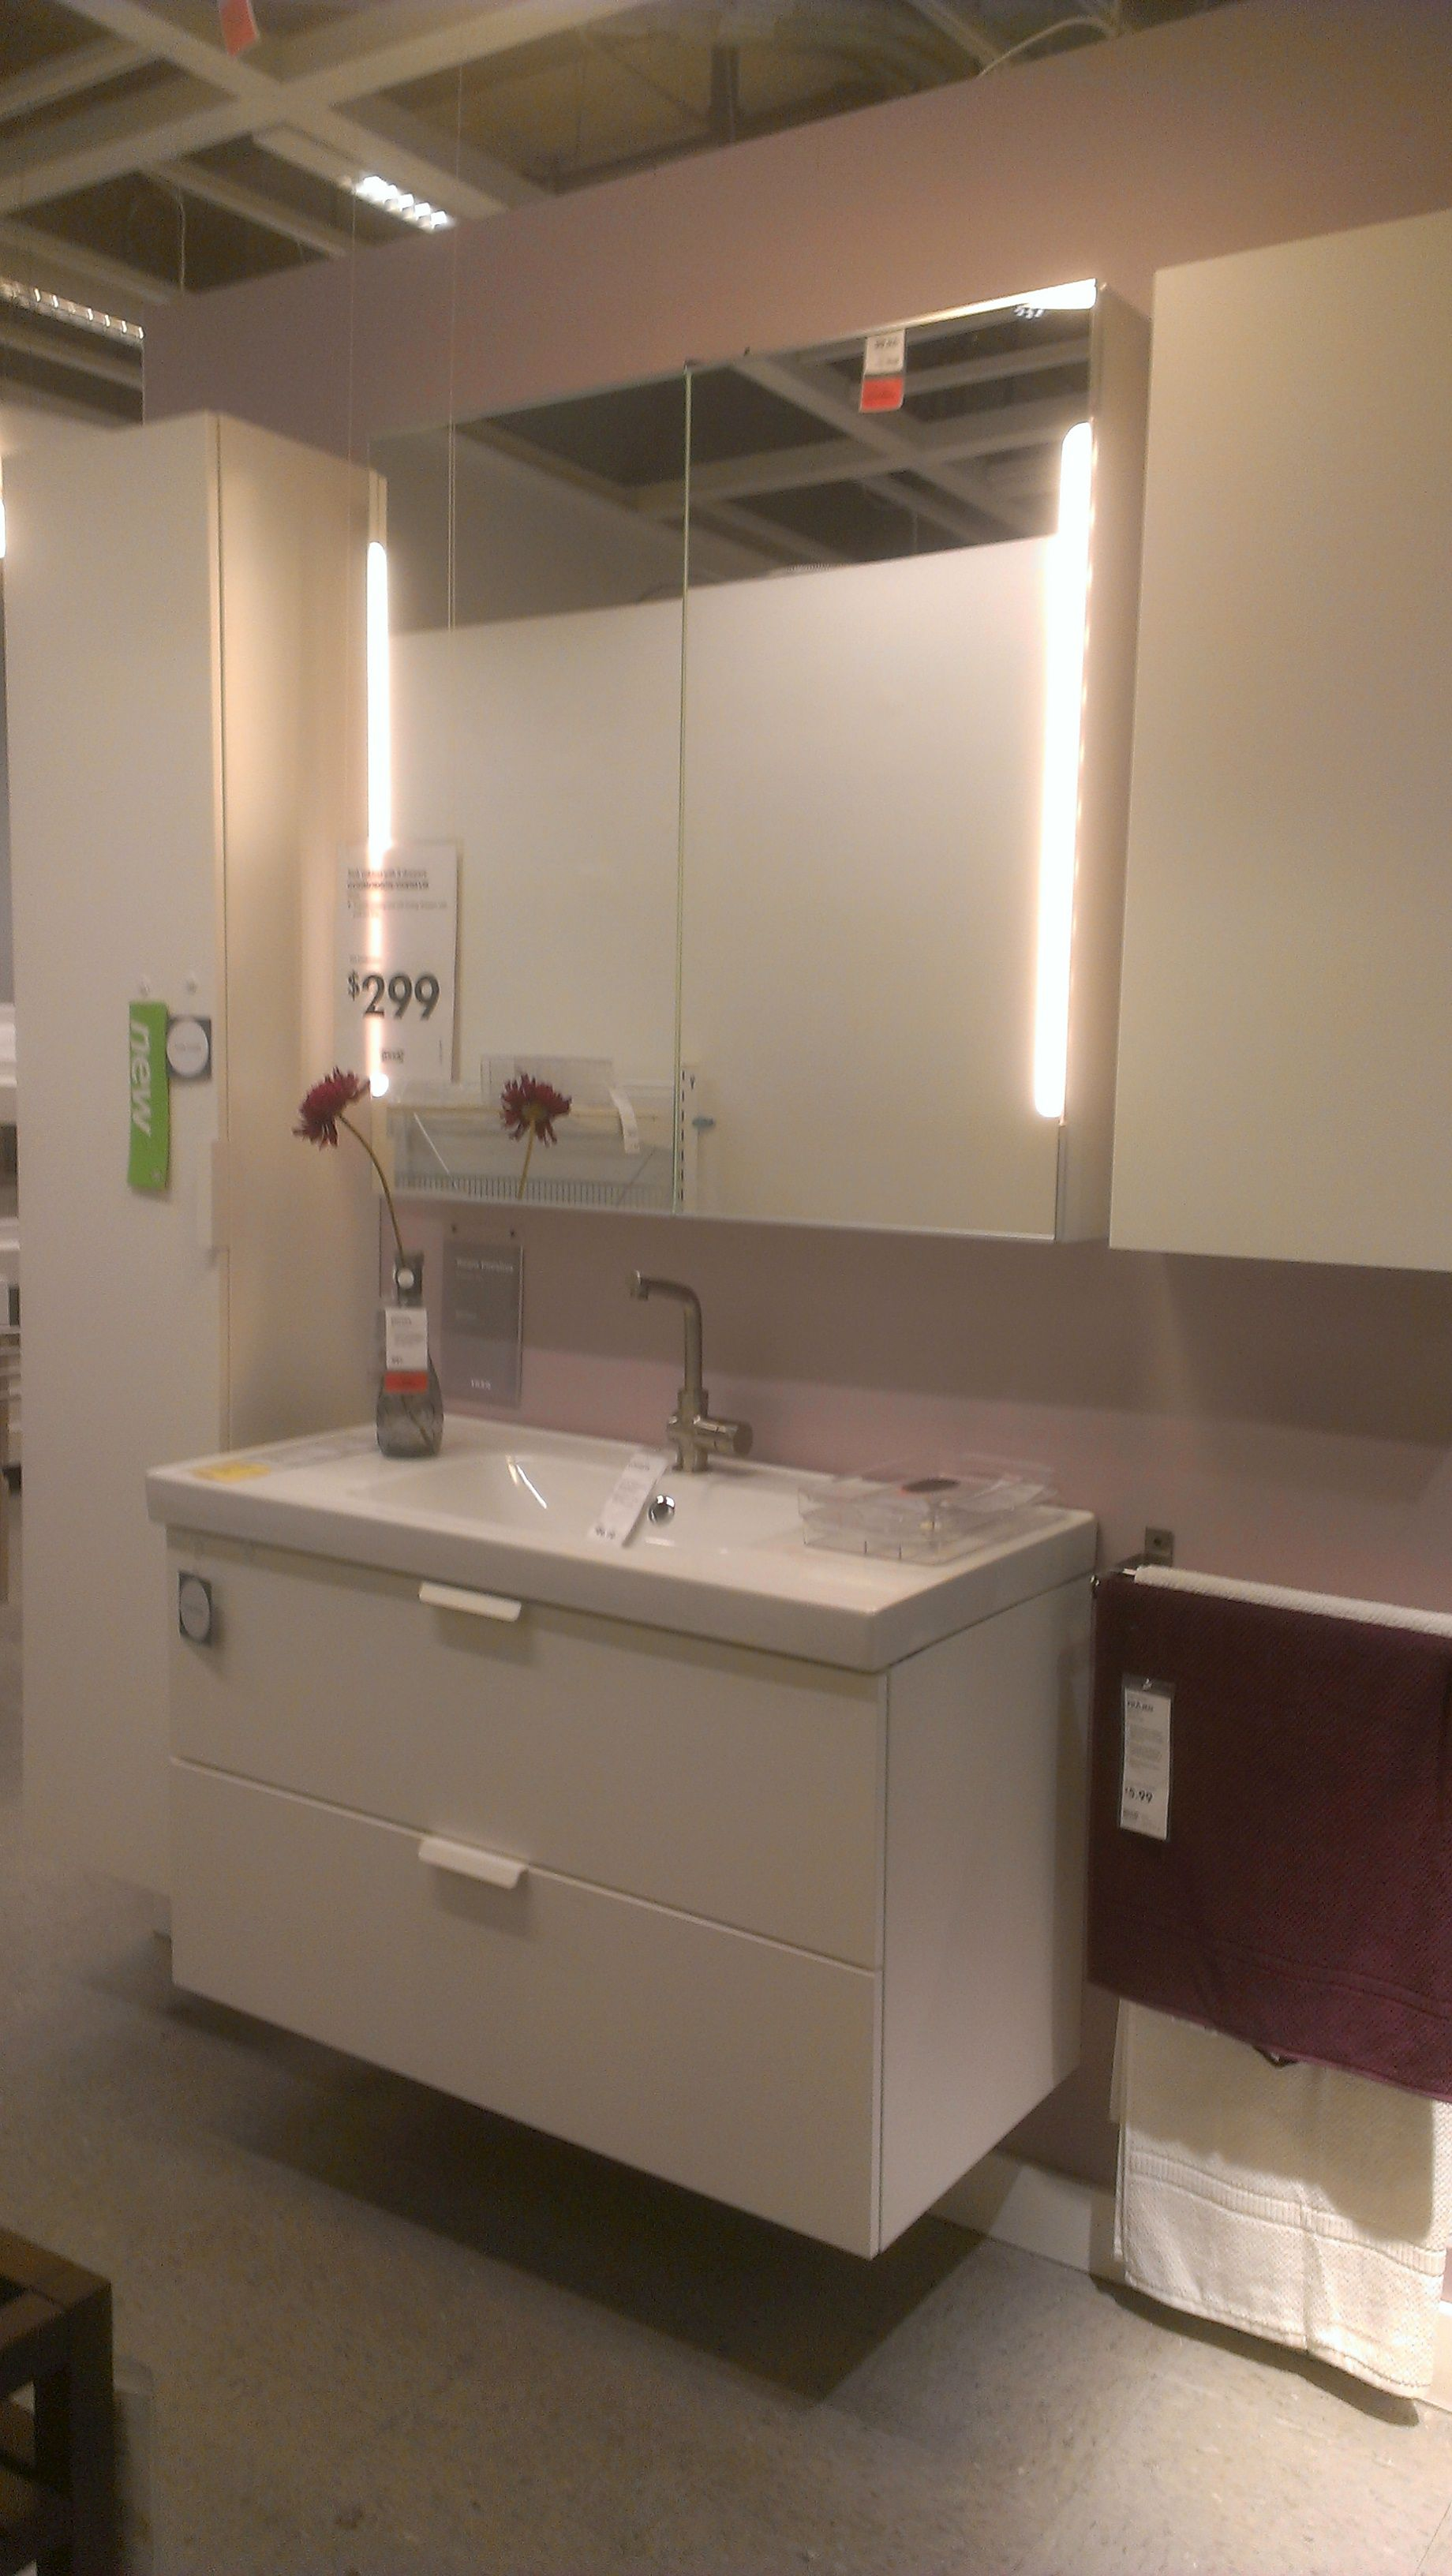 "Ikea Double Bathroom Sink Unit ikea godmorgen odensvik vanity and sink 39""w $299, storjorm mirror"